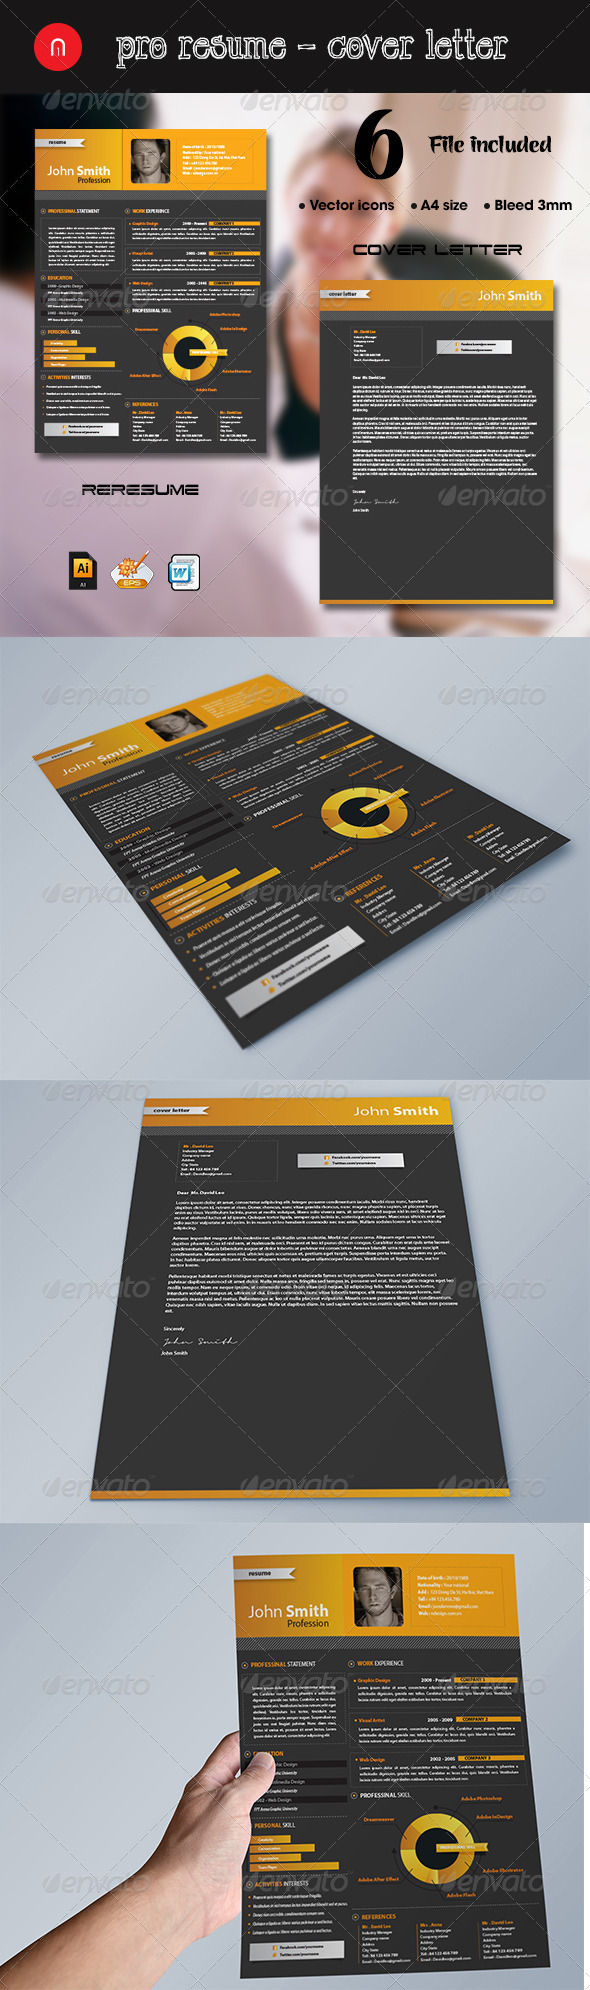 Pro Resume + Cover Letter - Resumes Stationery